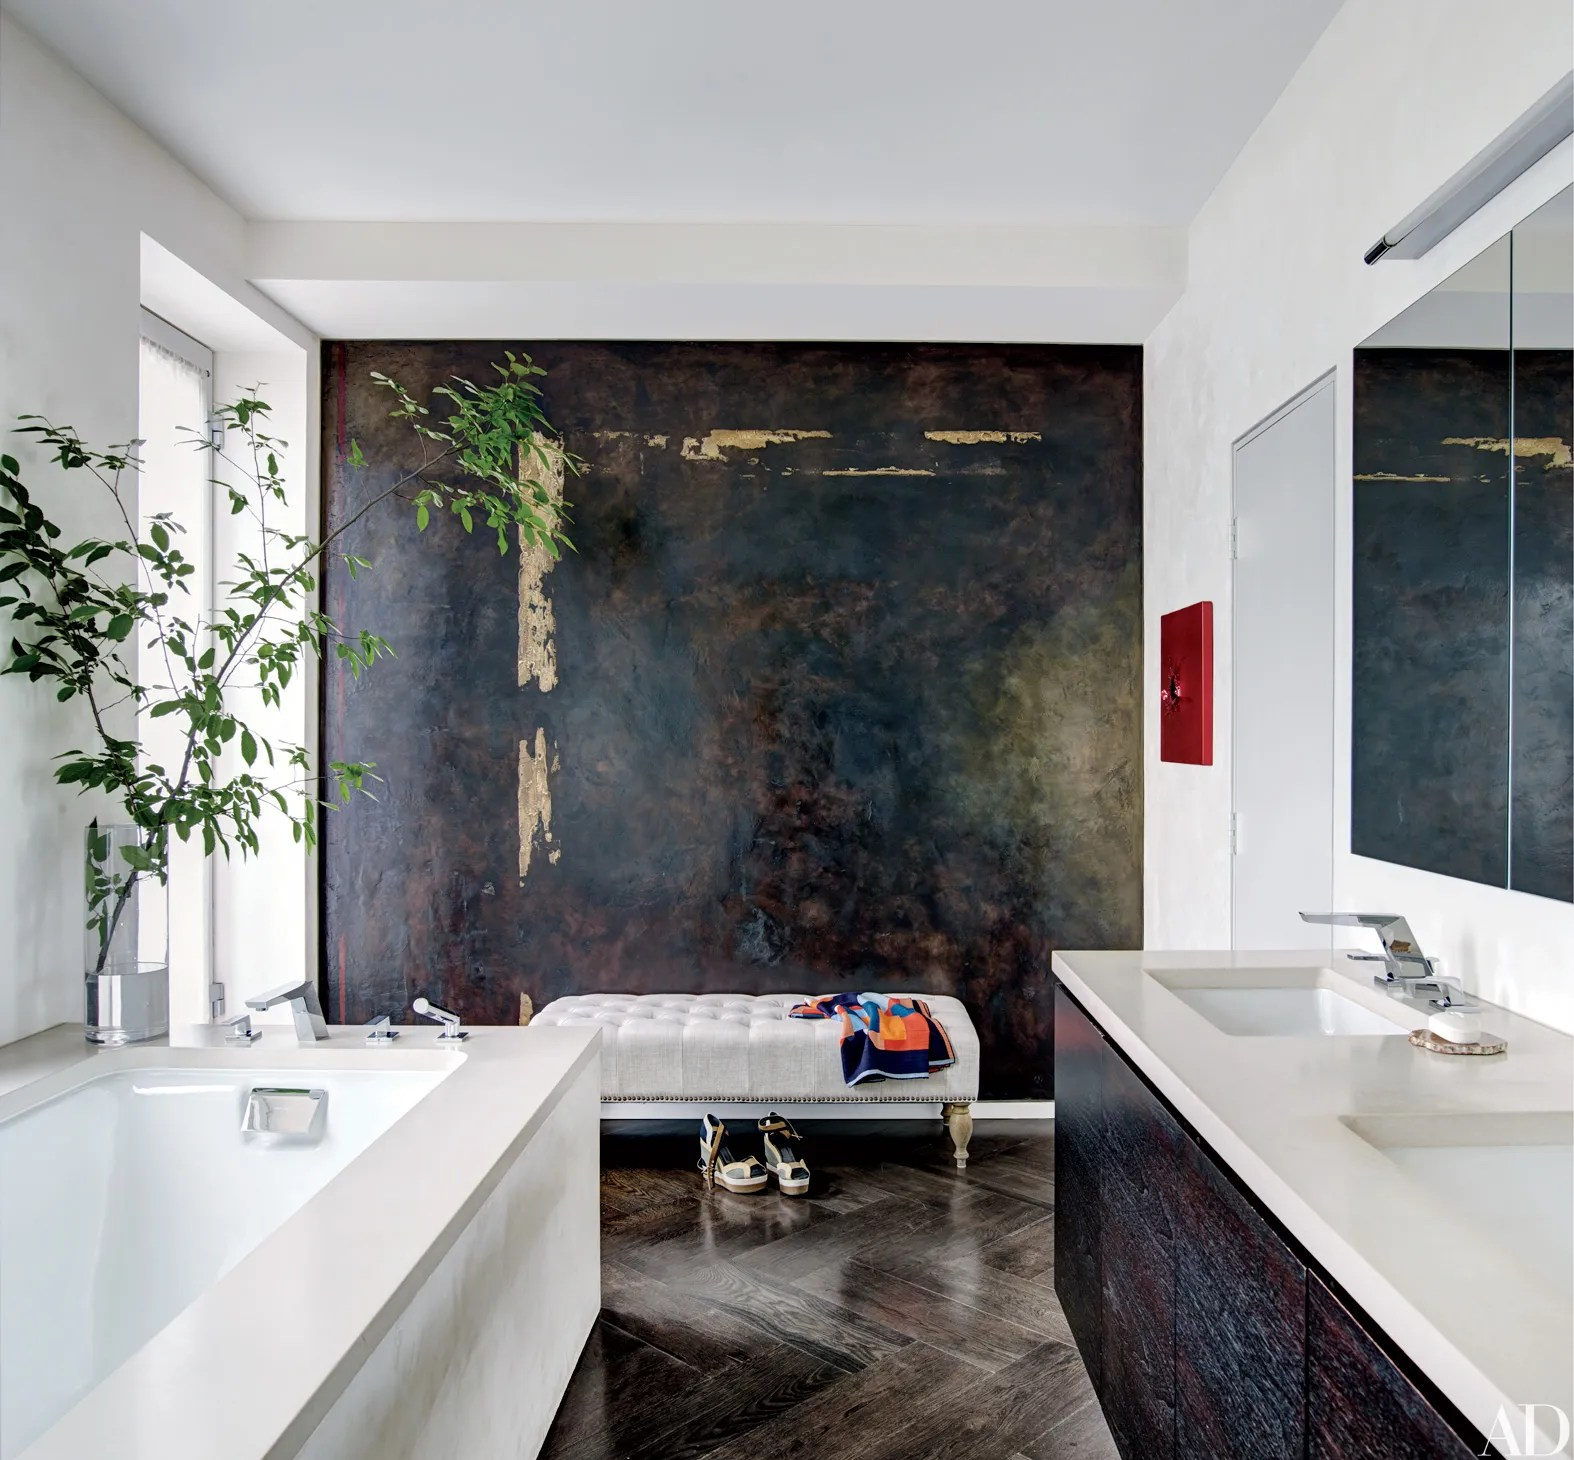 Architecture Bathroom Design 25 Bathroom Design Ideas To Inspire Your Next Renovation